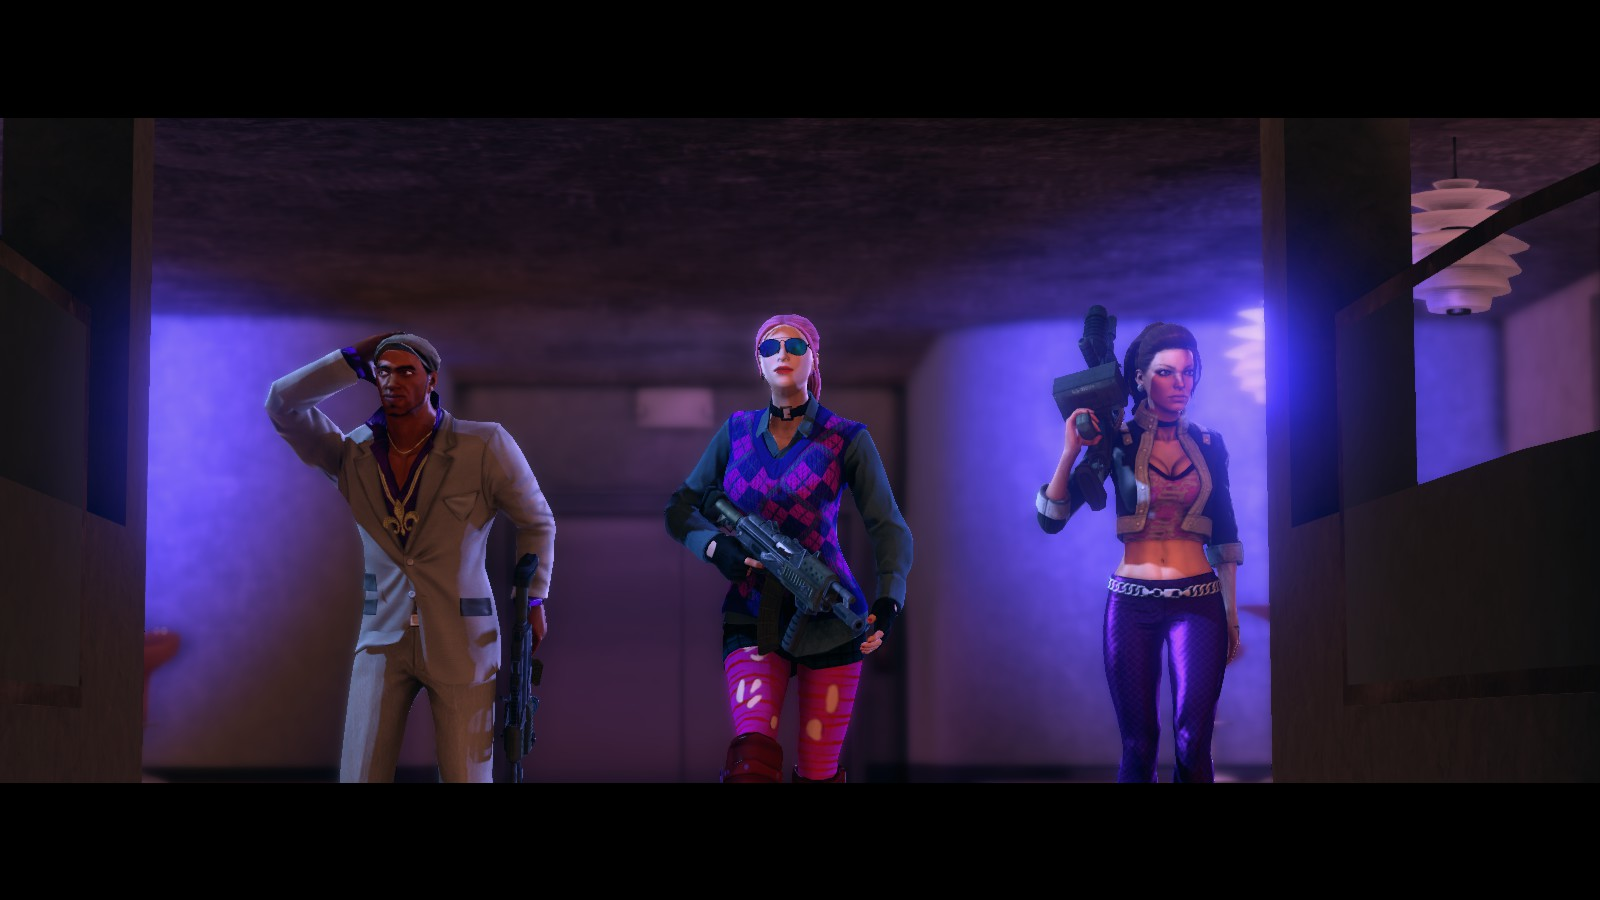 Saints row 3: naked female character nudes wives